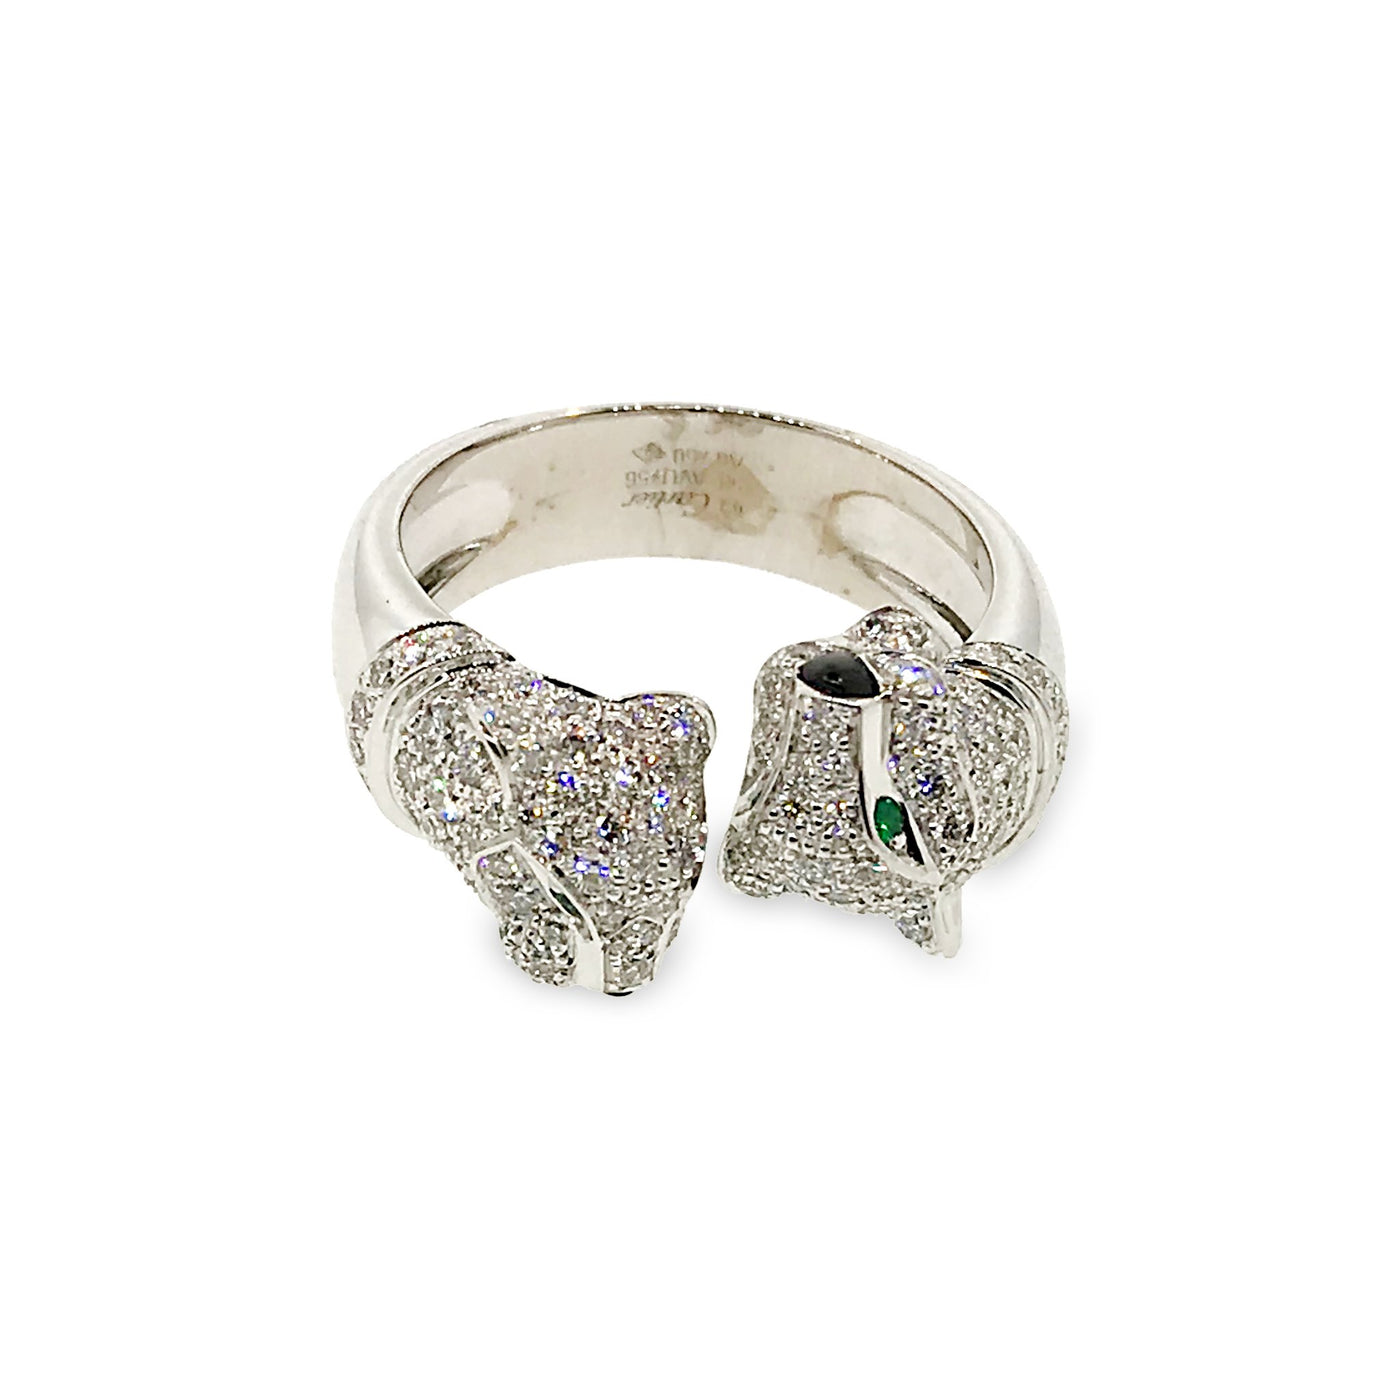 55da232bc8271 Cartier 18K White Gold 2 Heads Panthere Diamond, Onyx and Emerald Ring  Size: 8.75